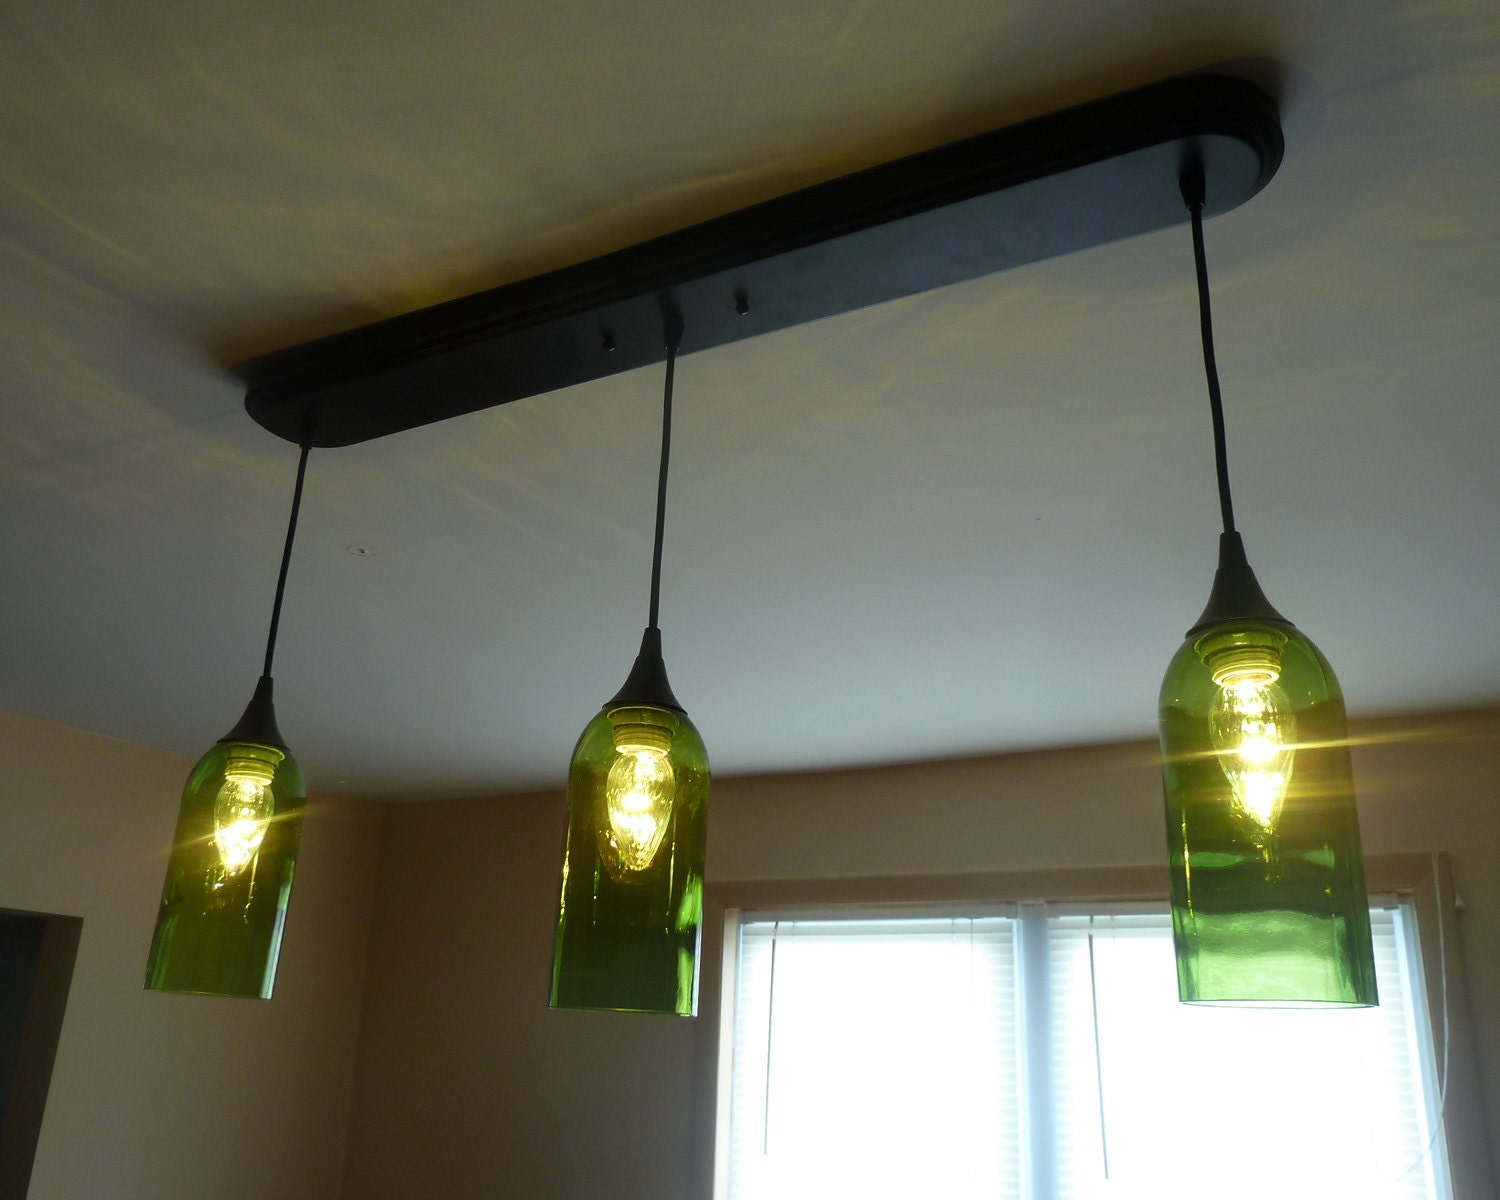 Green wine bottle 3 pendant light billiards table kitchen by pic76 - Wine bottle pendant light ...